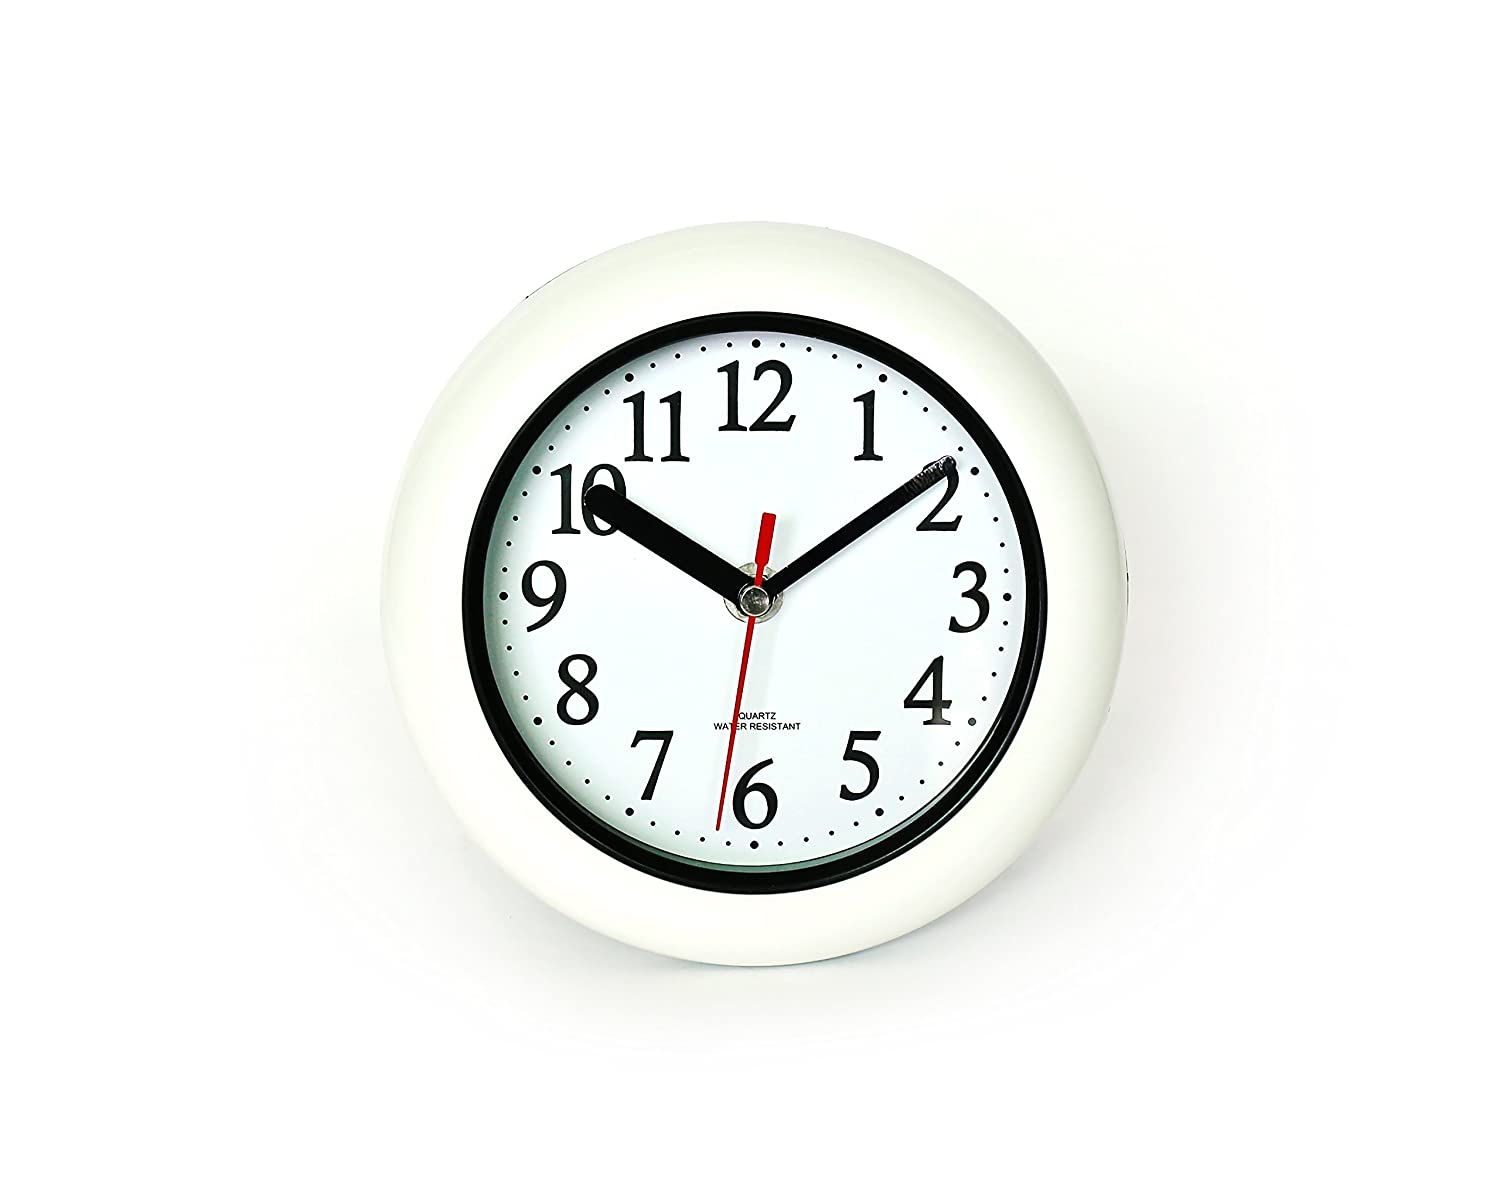 "Perfect White Shell Water Resistant Clock, Quartz Movement, Simple Design, 6.5"" in Diameter, ABS Glass Front, Flexible Options to Hang or to Stand. Withstand Water Vapor and Moisture."